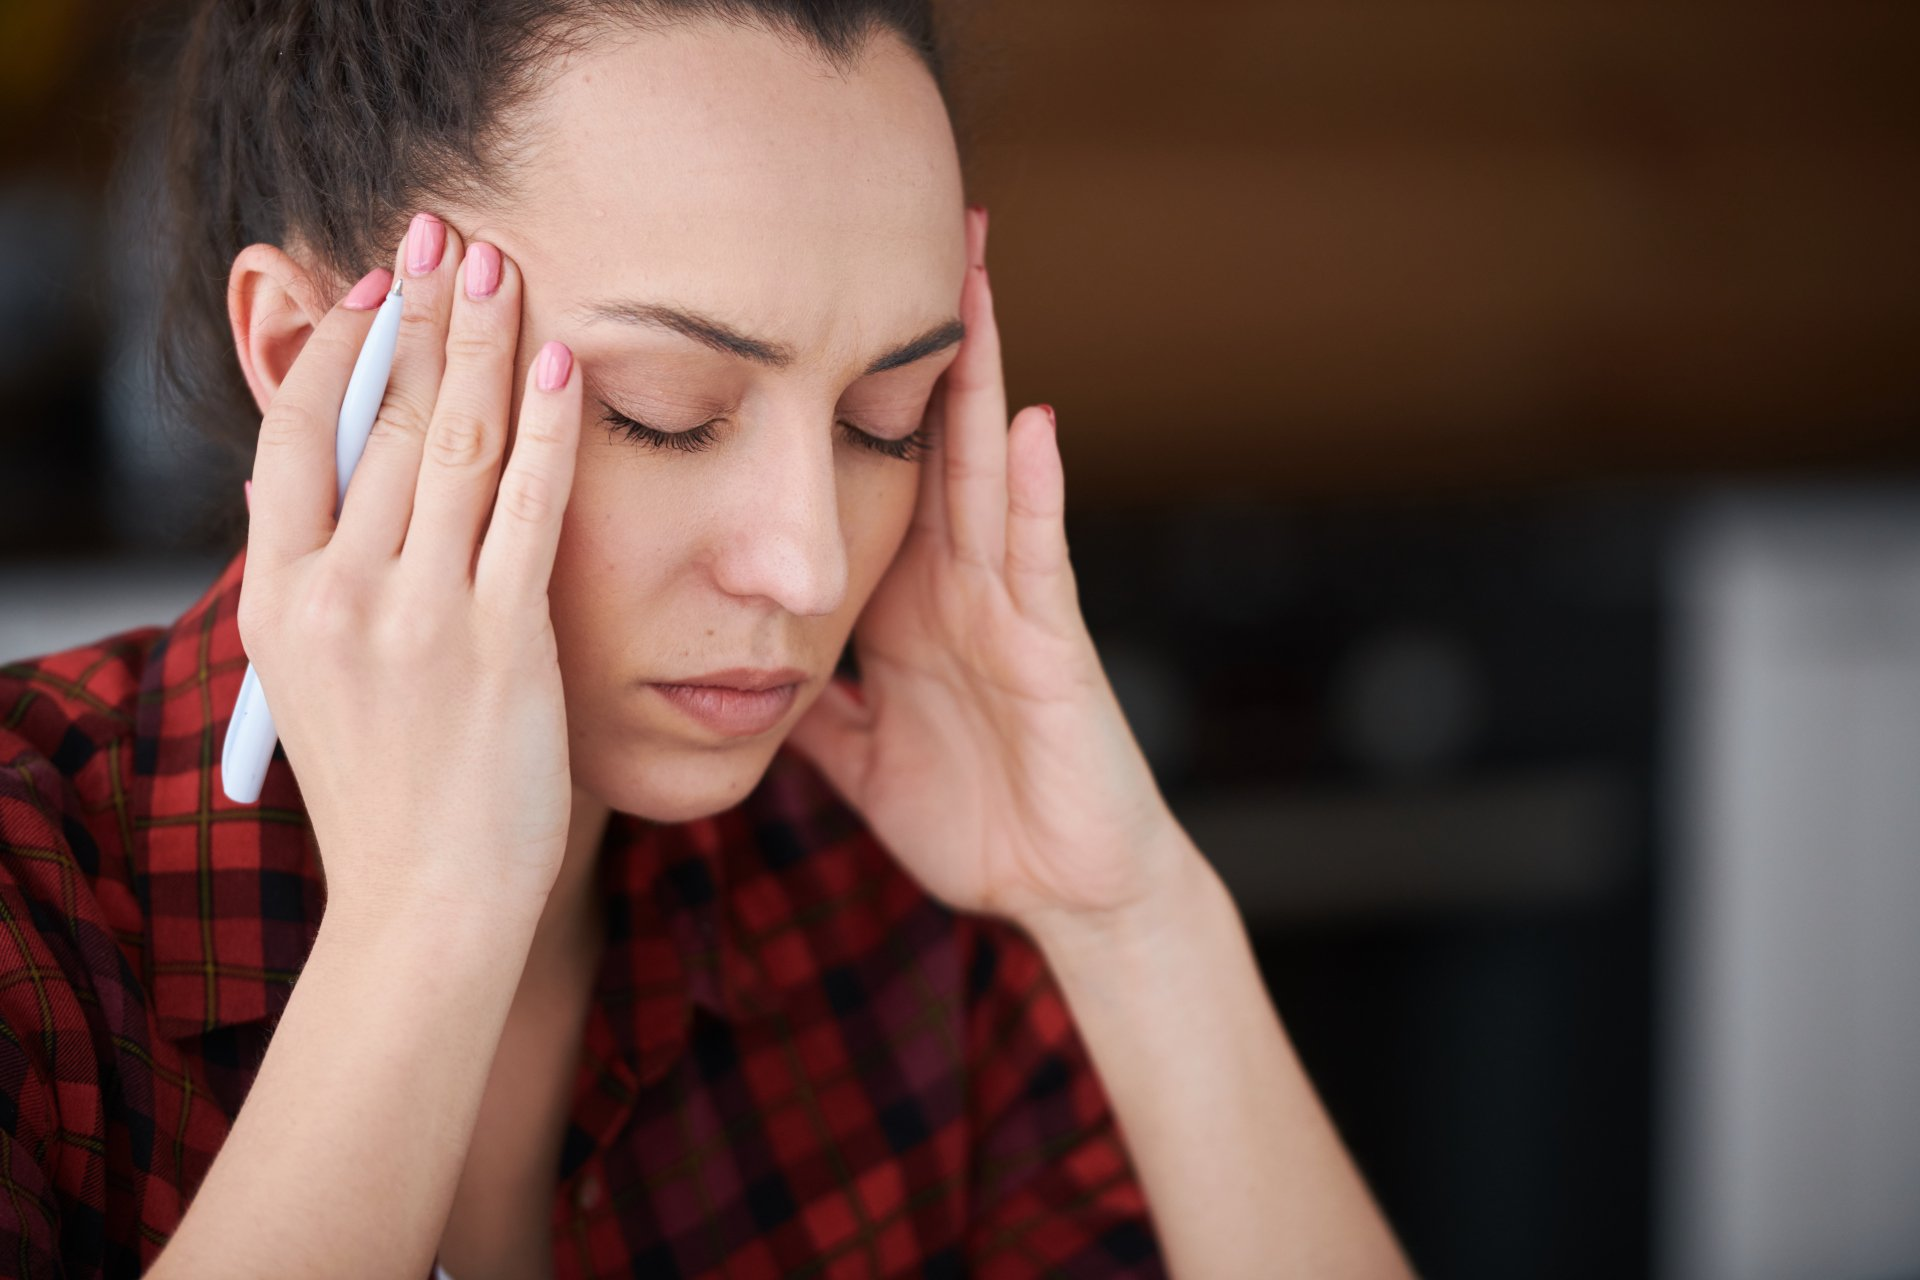 5 Amazing Reasons You Should Seek a Chiropractor for Headaches